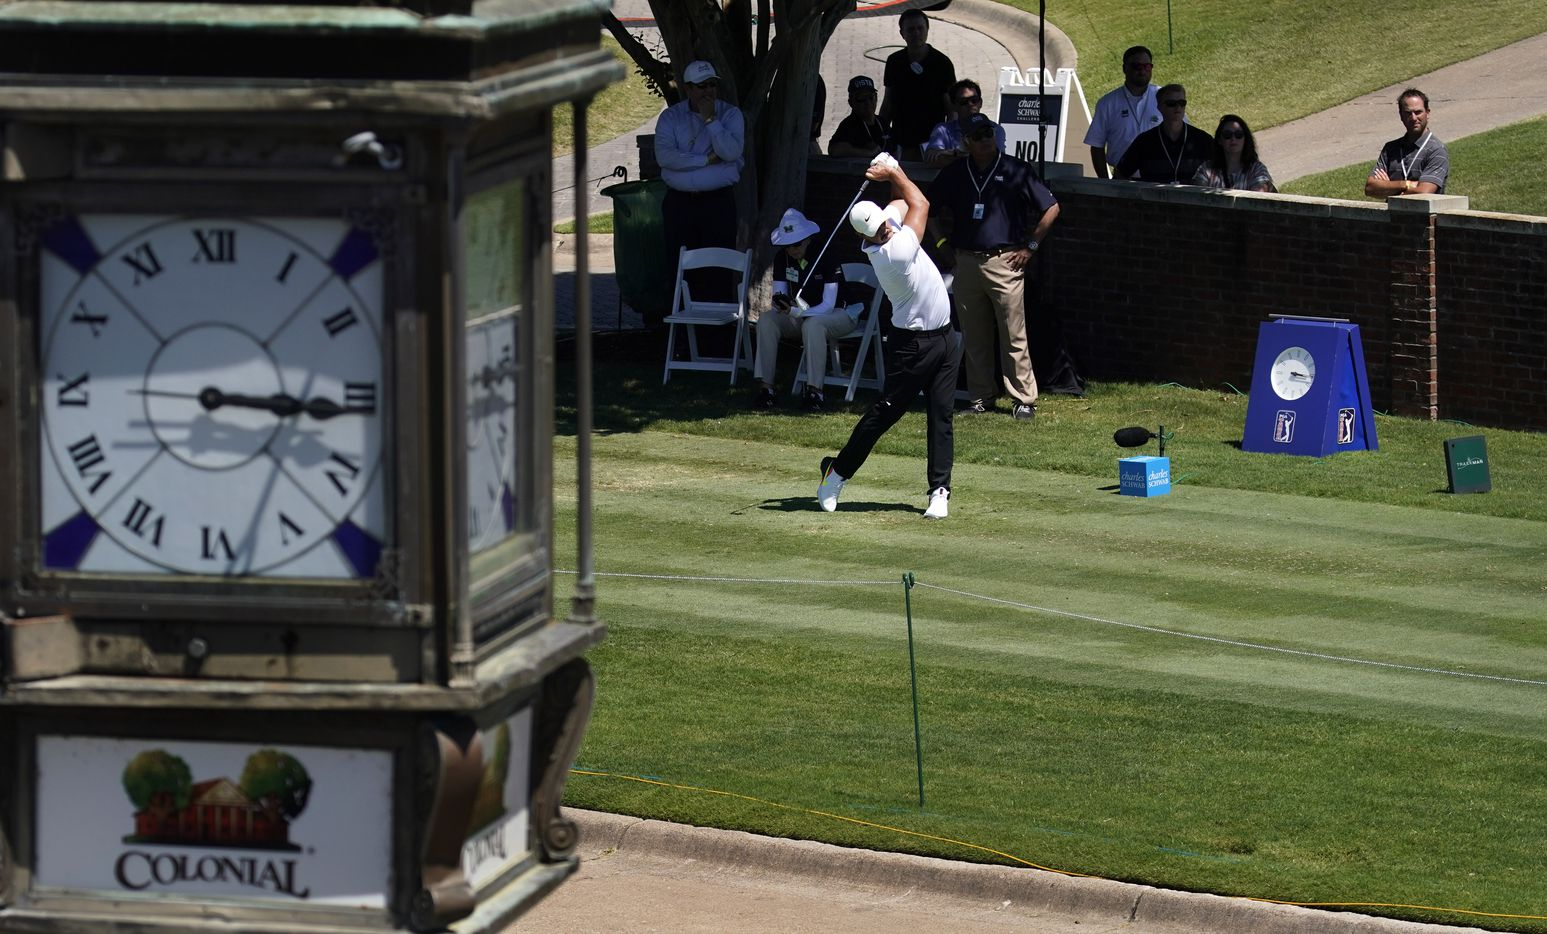 PGA Tour golfer Brooks Koepka tees off on No. 10  during the opening round of the Charles Schwab Challenge at the Colonial Country Club in Fort Worth, Thursday, June 11, 2020.  The Challenge is the first tour event since the COVID-19 pandemic began. (Tom Fox/The Dallas Morning News)